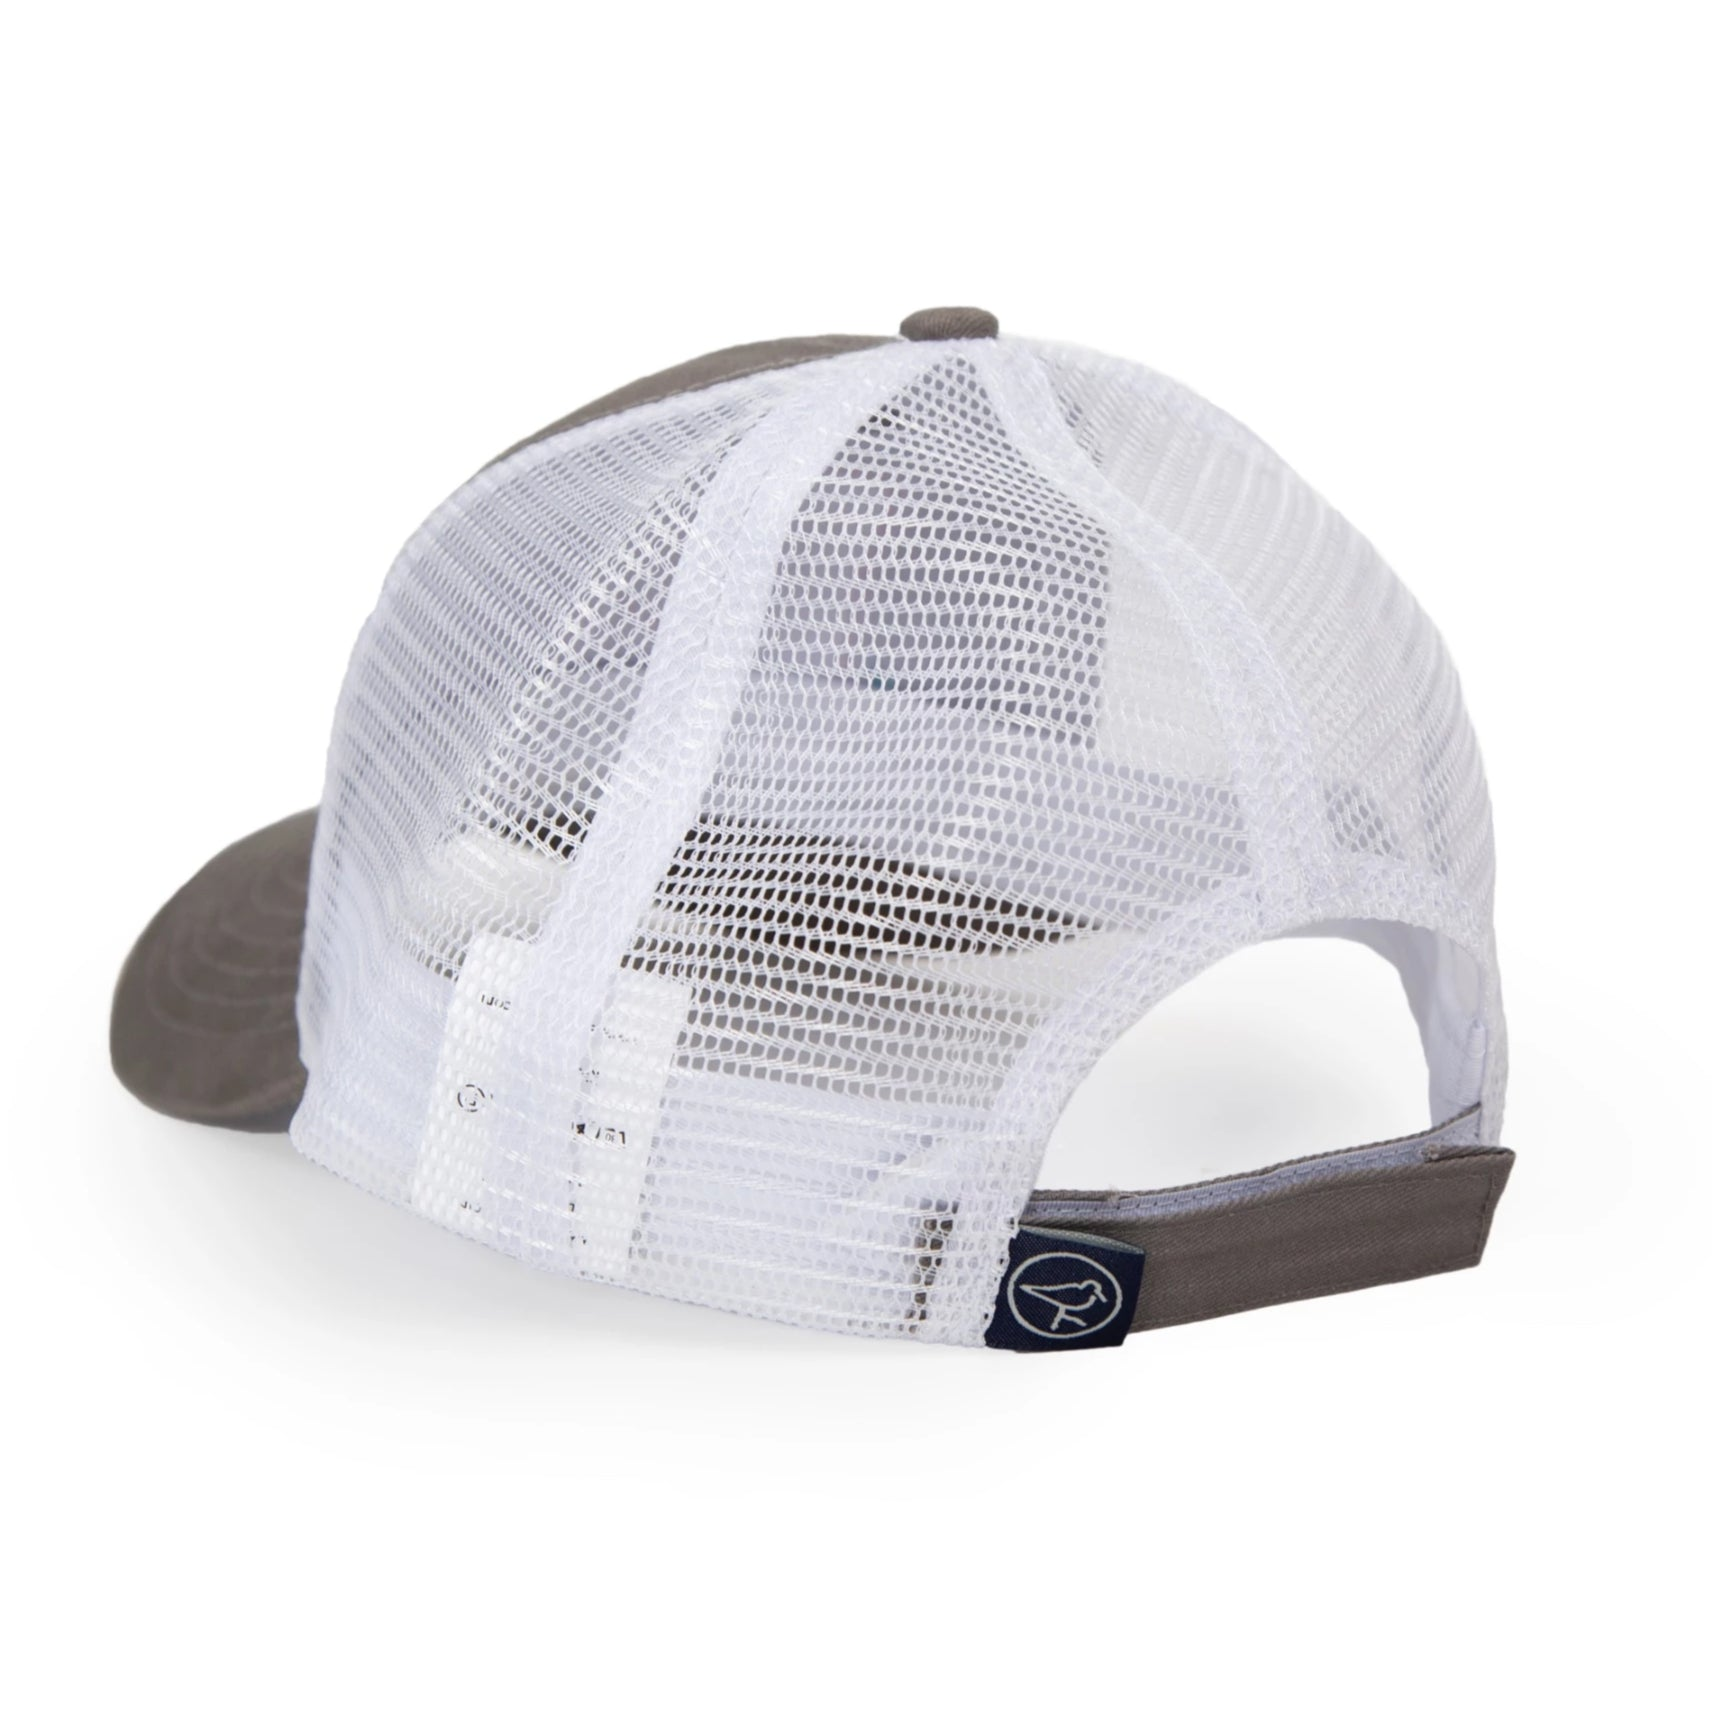 10-4 TRUCKER HAT HARBOR MIST/RED